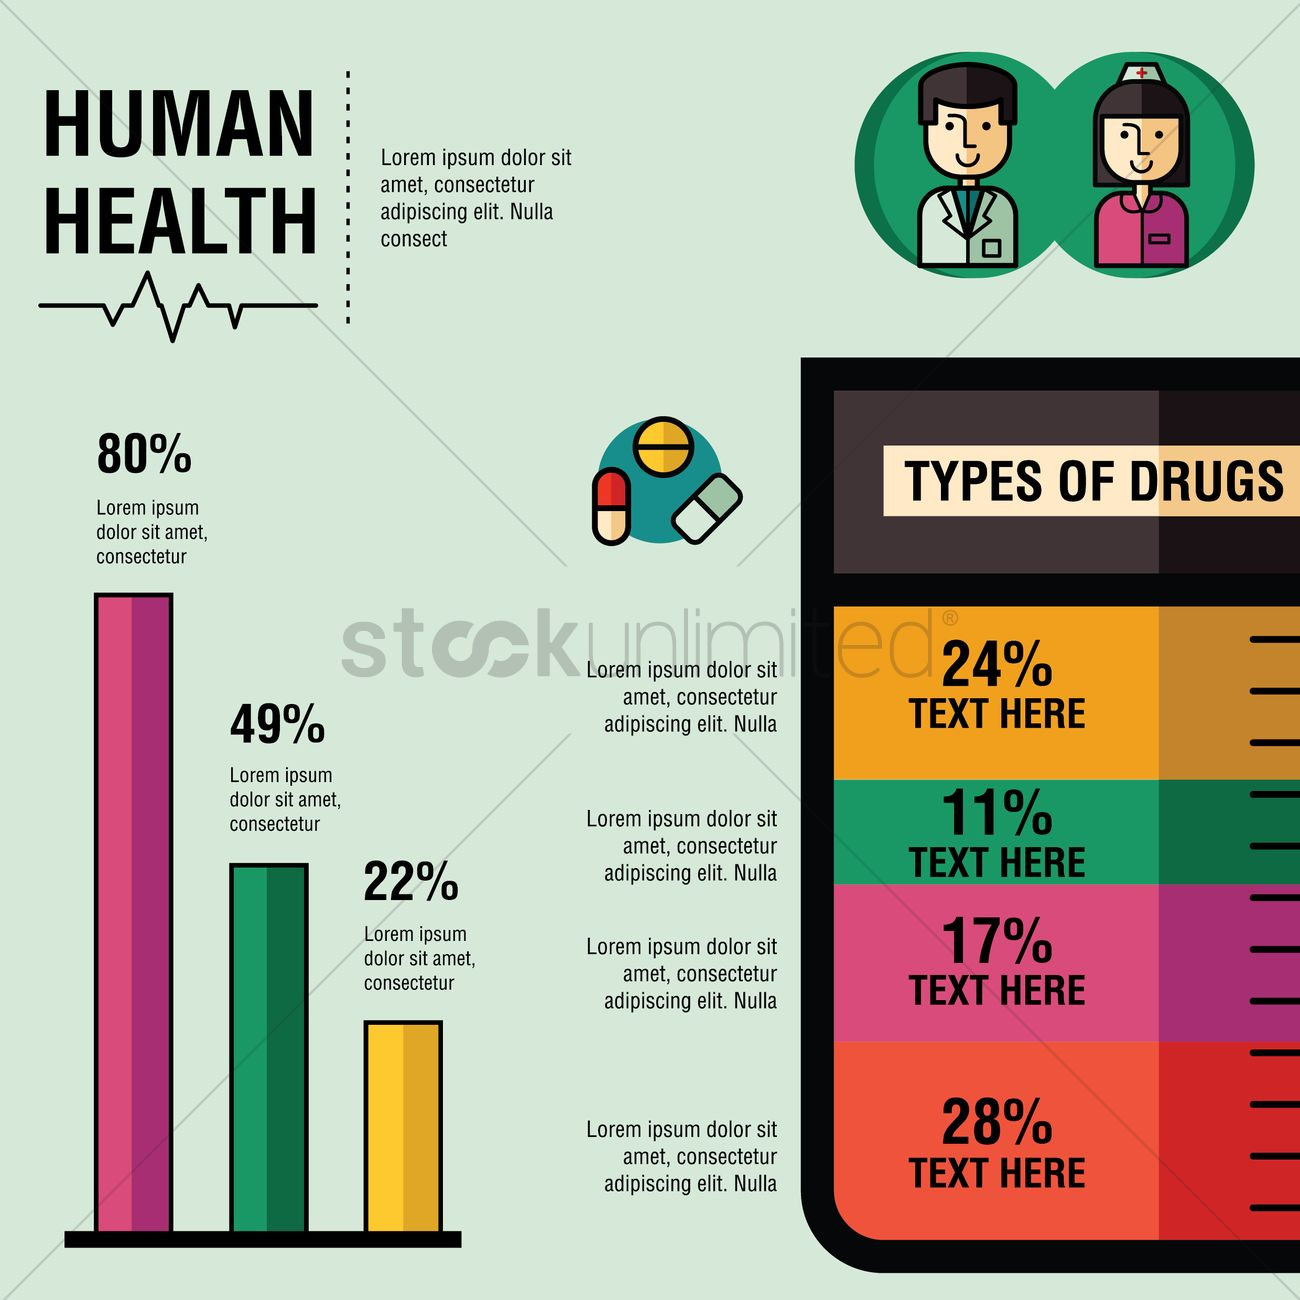 Human health with types of drugs infographic Vector Image